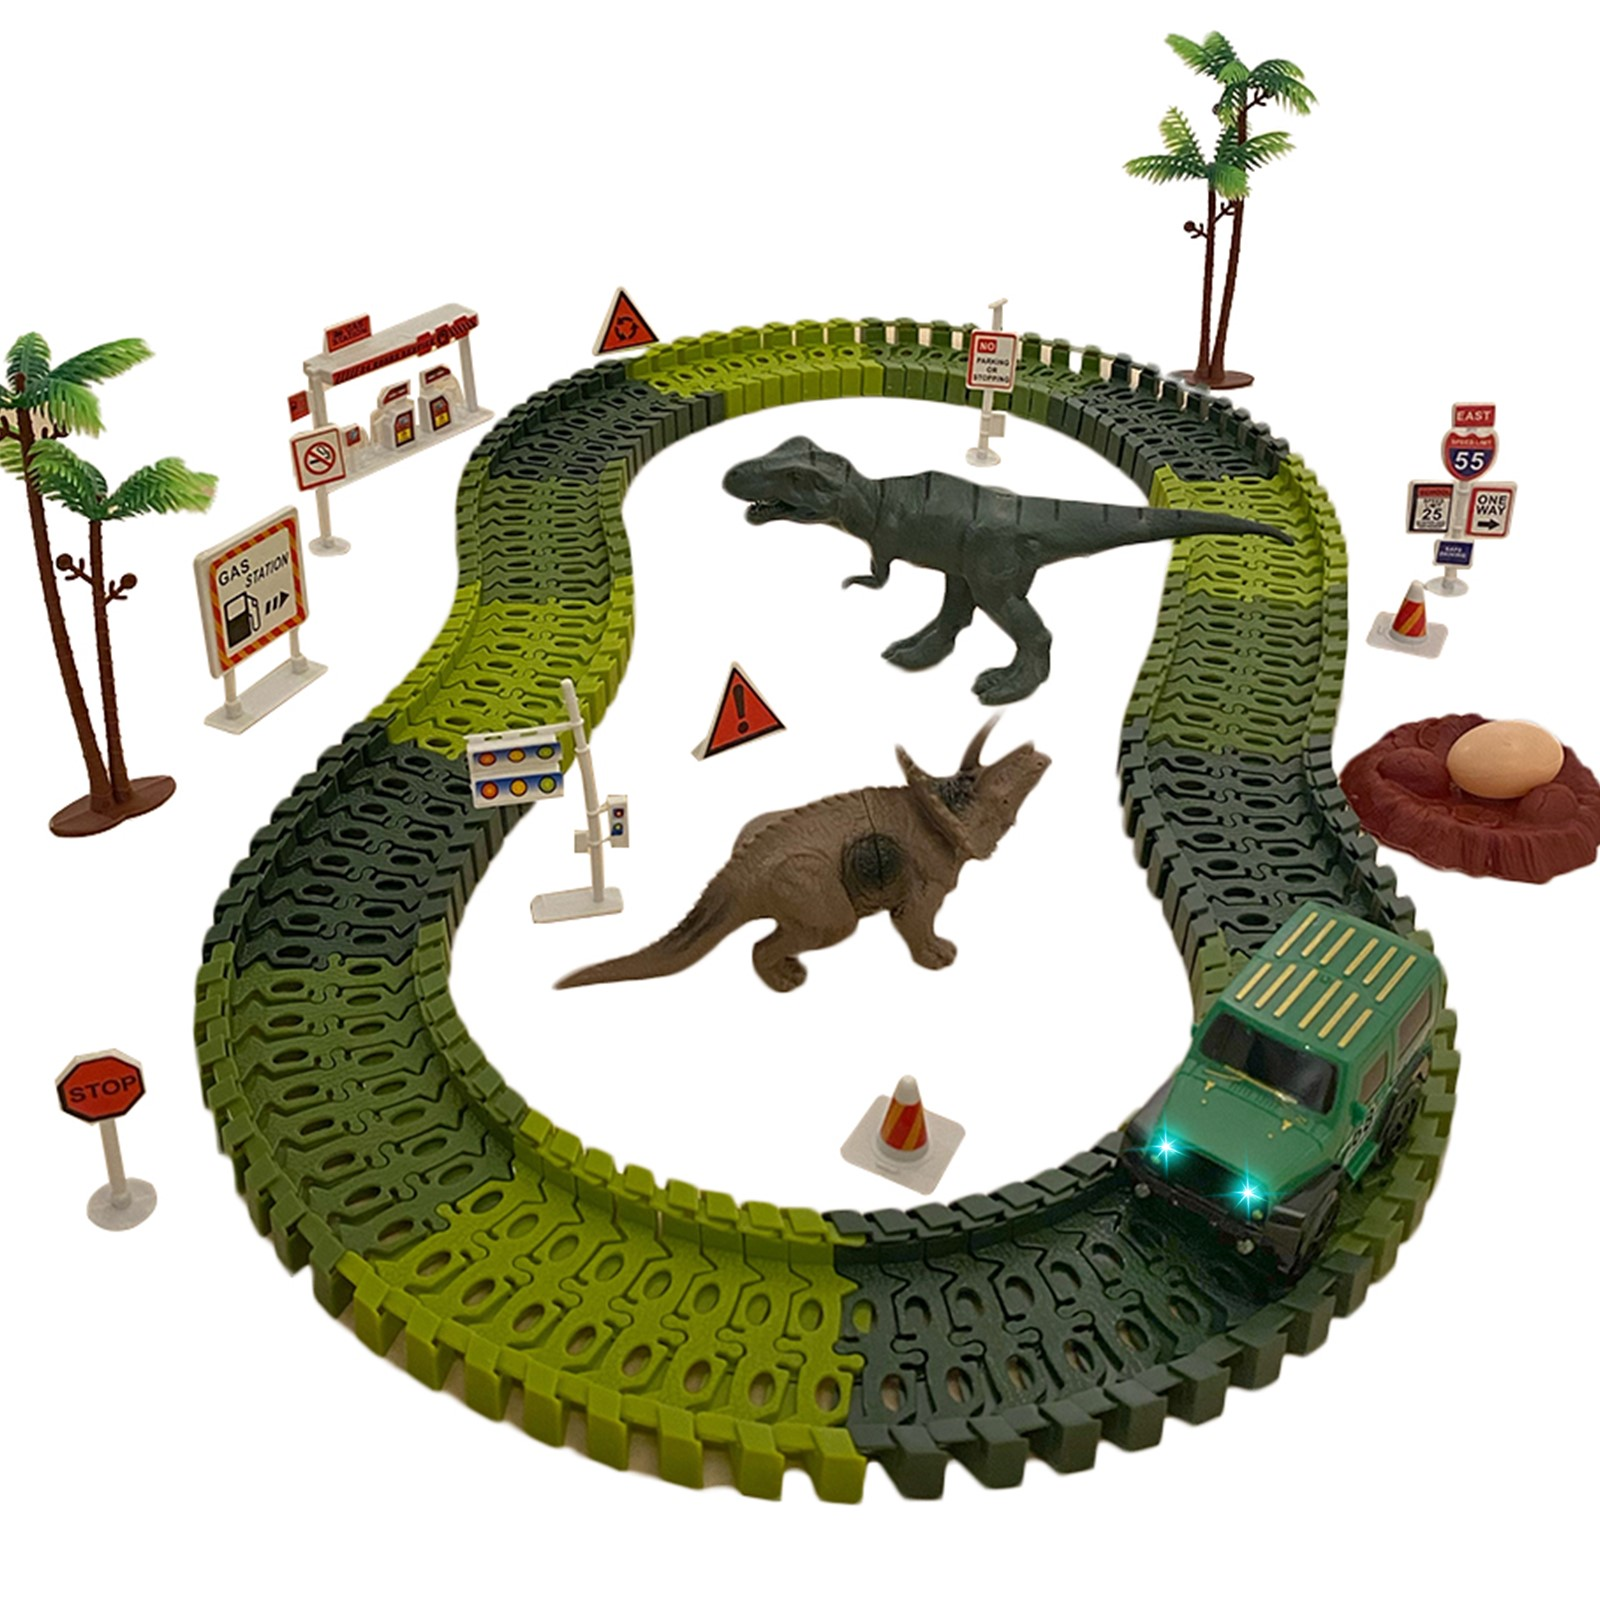 Vokodo Dinosaur Race Car Track Set 130 Piece With Motorized Light Up Truck T-Rex Triceratops And Figurines Flexible Building Tracks Kids Racetrack Vehicle Playset Great Gift For Children Boys Girls